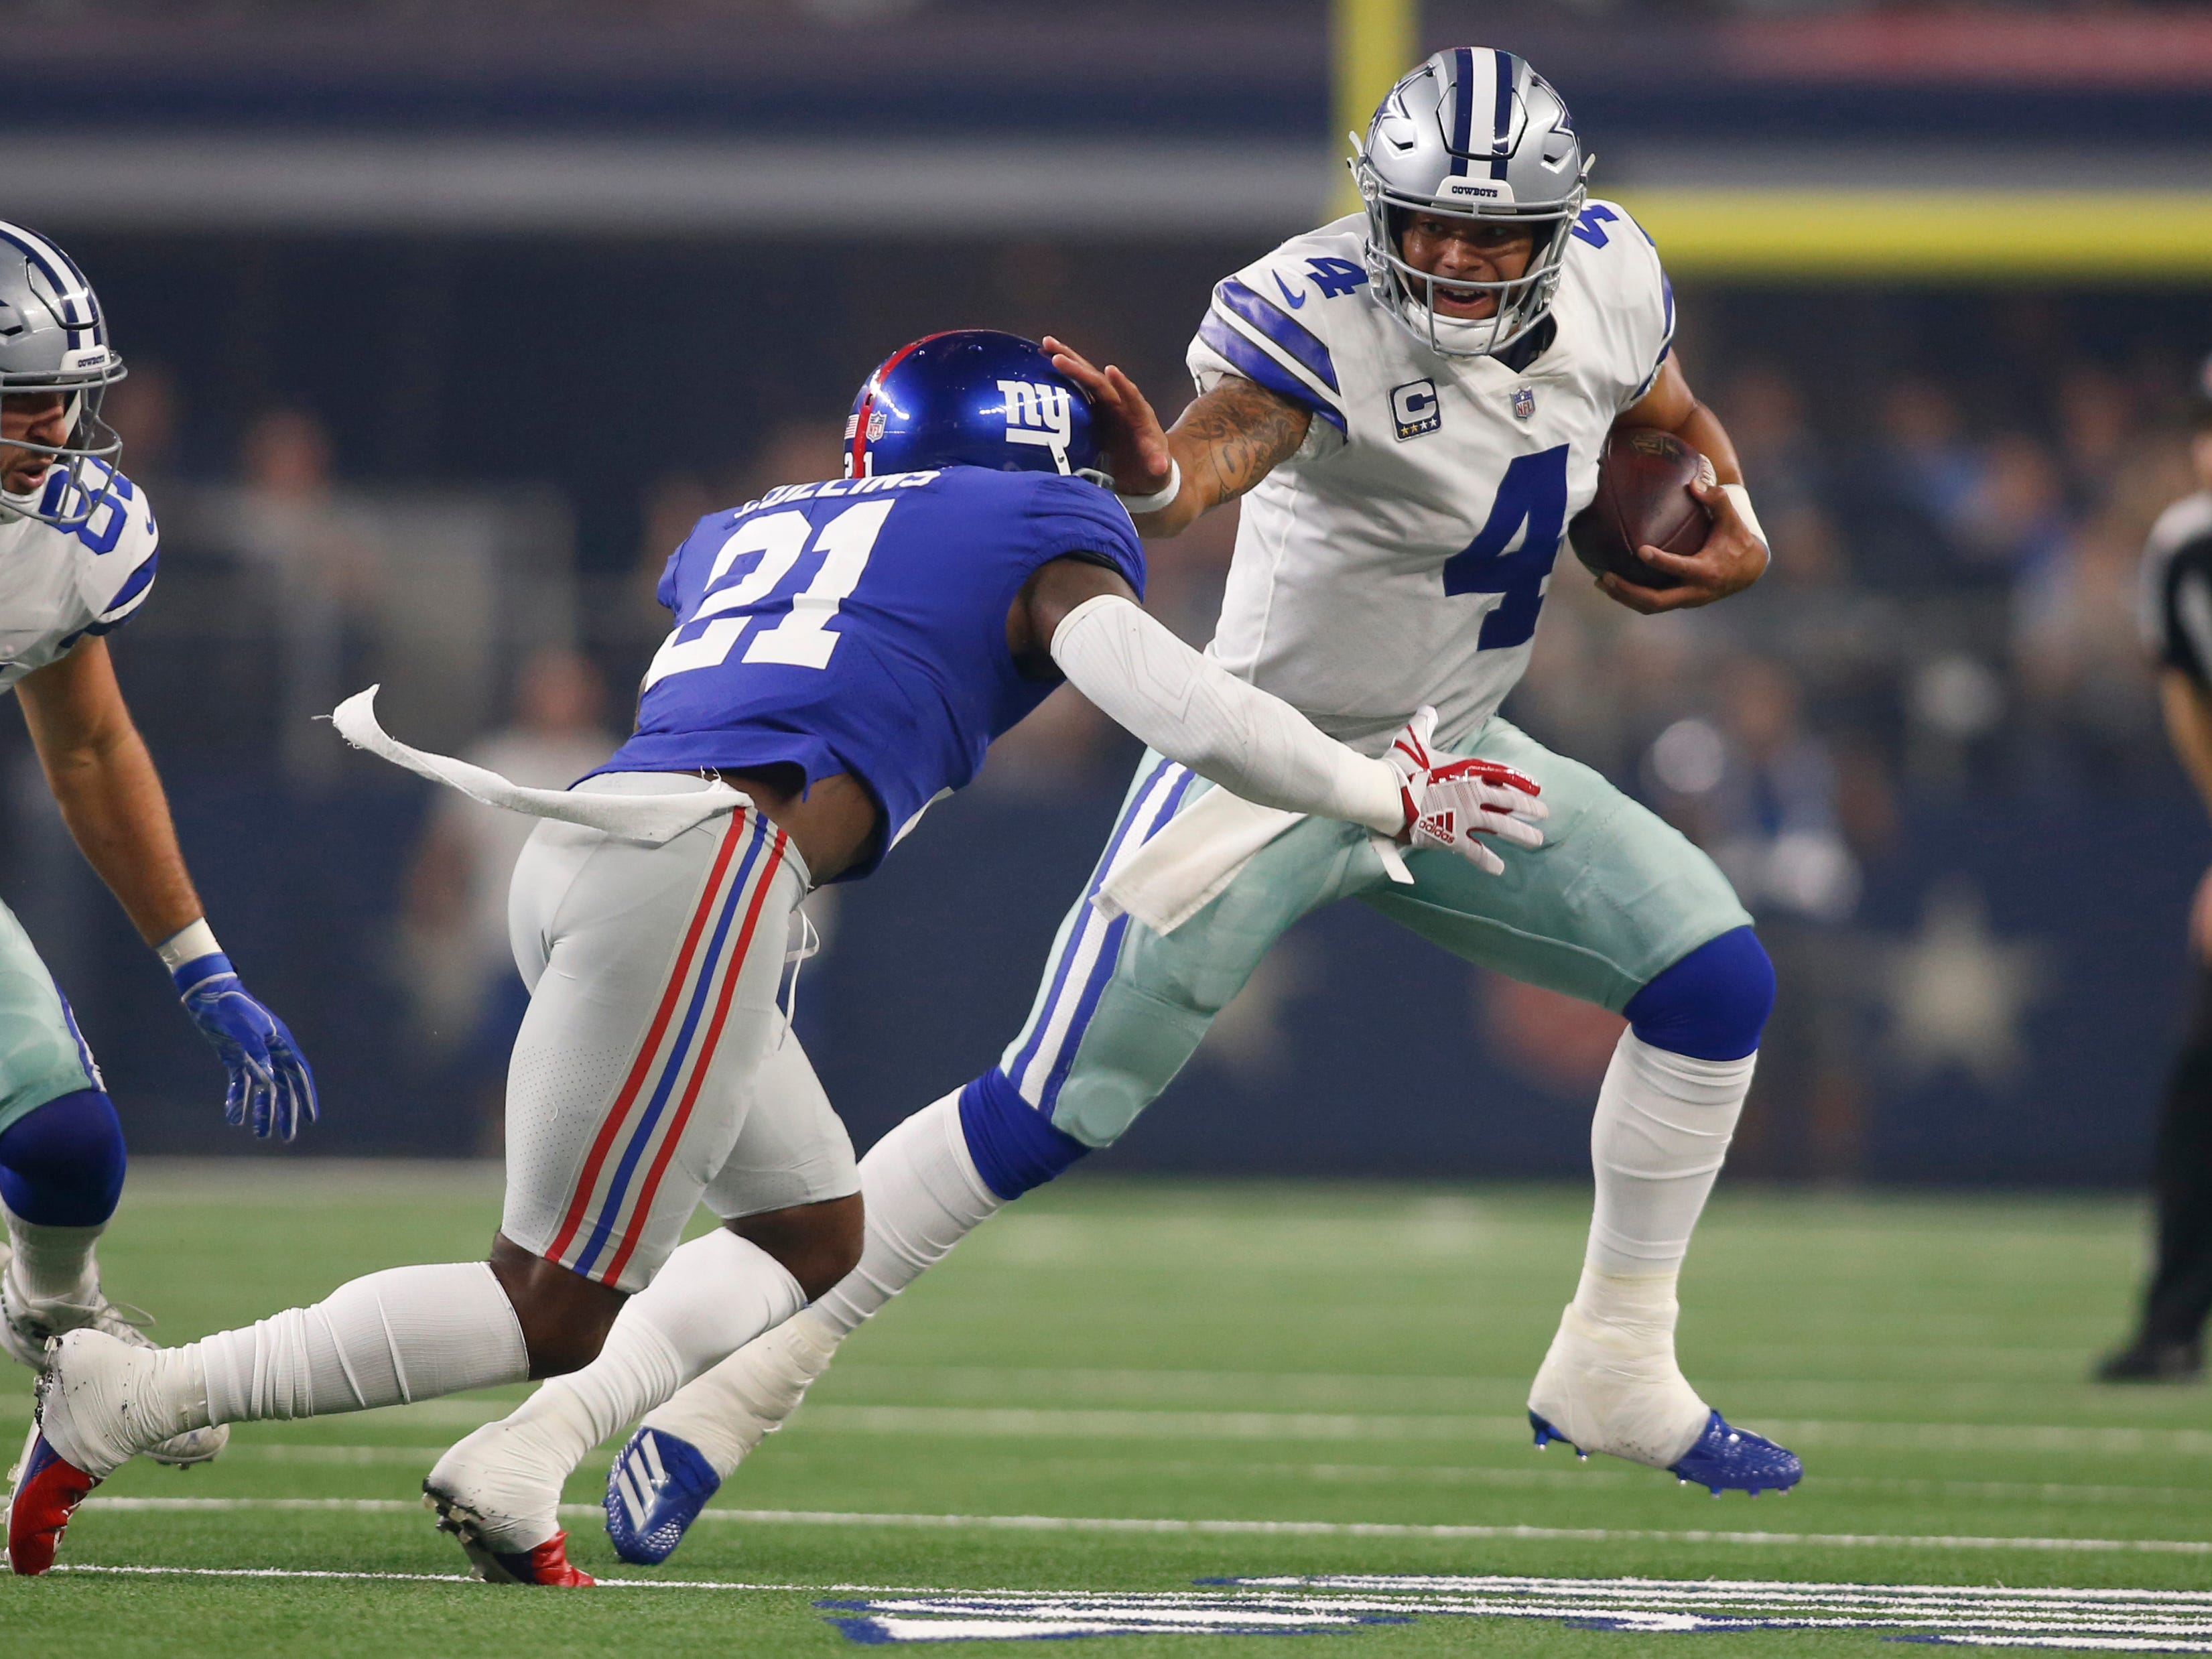 Sep 16, 2018; Arlington, TX, USA; Dallas Cowboys quarterback Dak Prescott (4) stiff arms New York Giants defensive back Landon Collins (21) in the first quarter at AT&T Stadium. Mandatory Credit: Tim Heitman-USA TODAY Sports